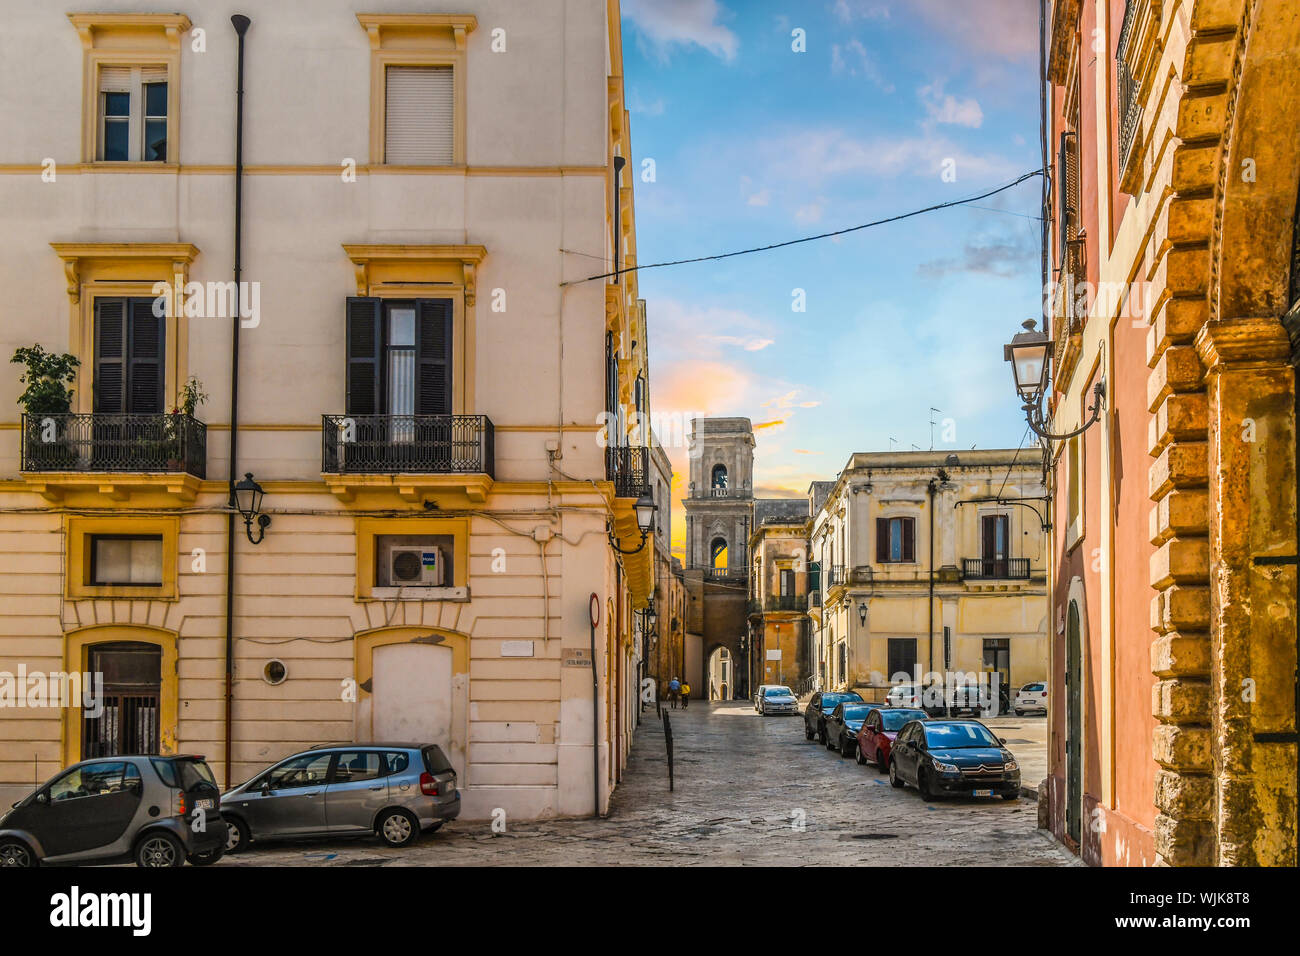 A couple is seen in the distance as they near a medieval church tower in the historic residential district of Brindisi, Italy. Stock Photo